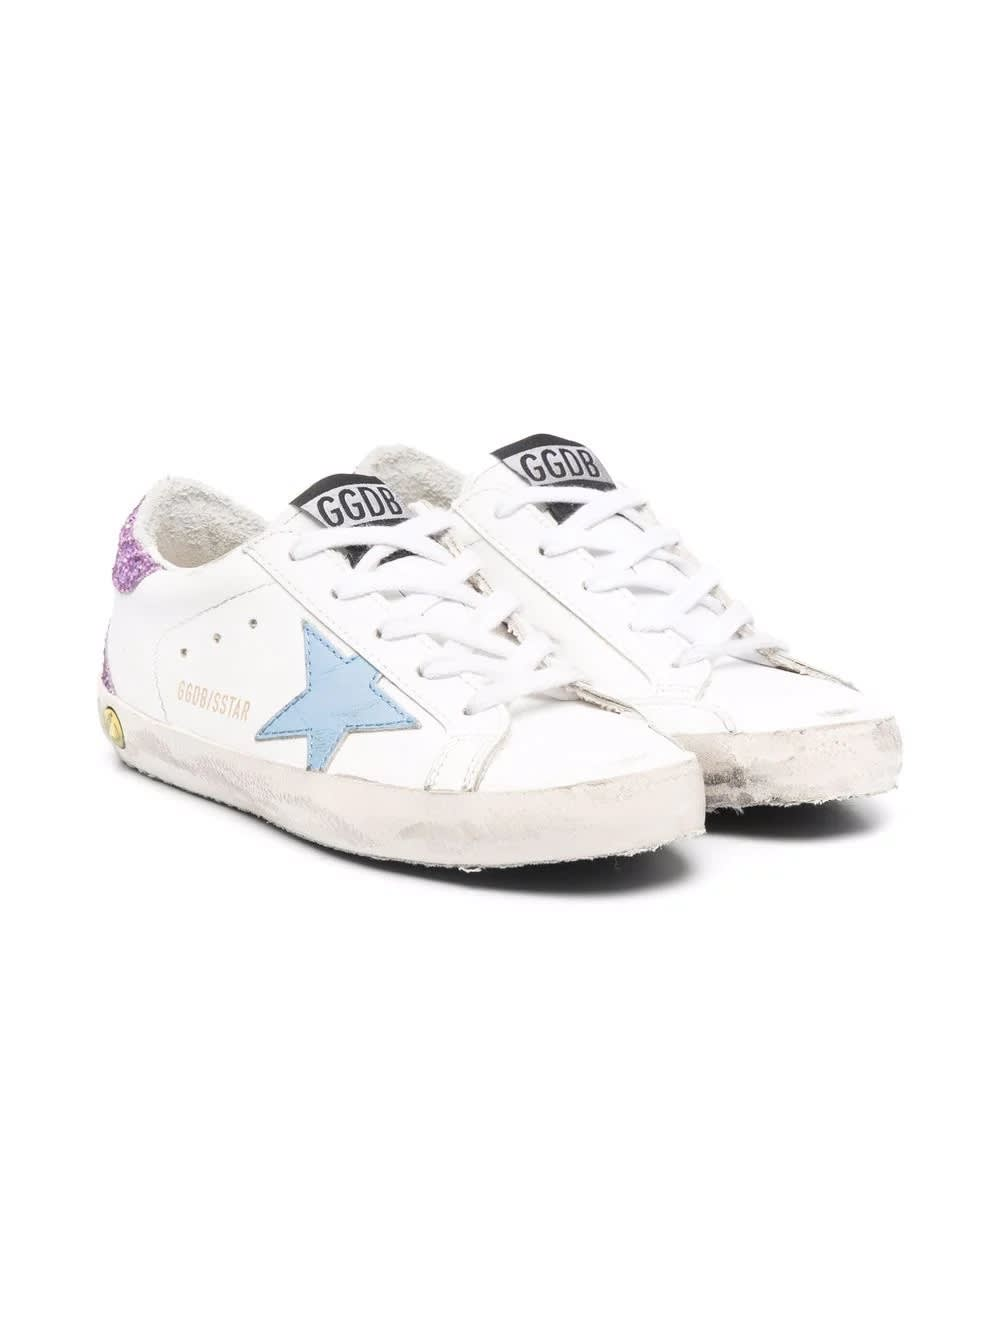 Golden Goose Sneakers With Light Blue Star And Purple Glitter Back